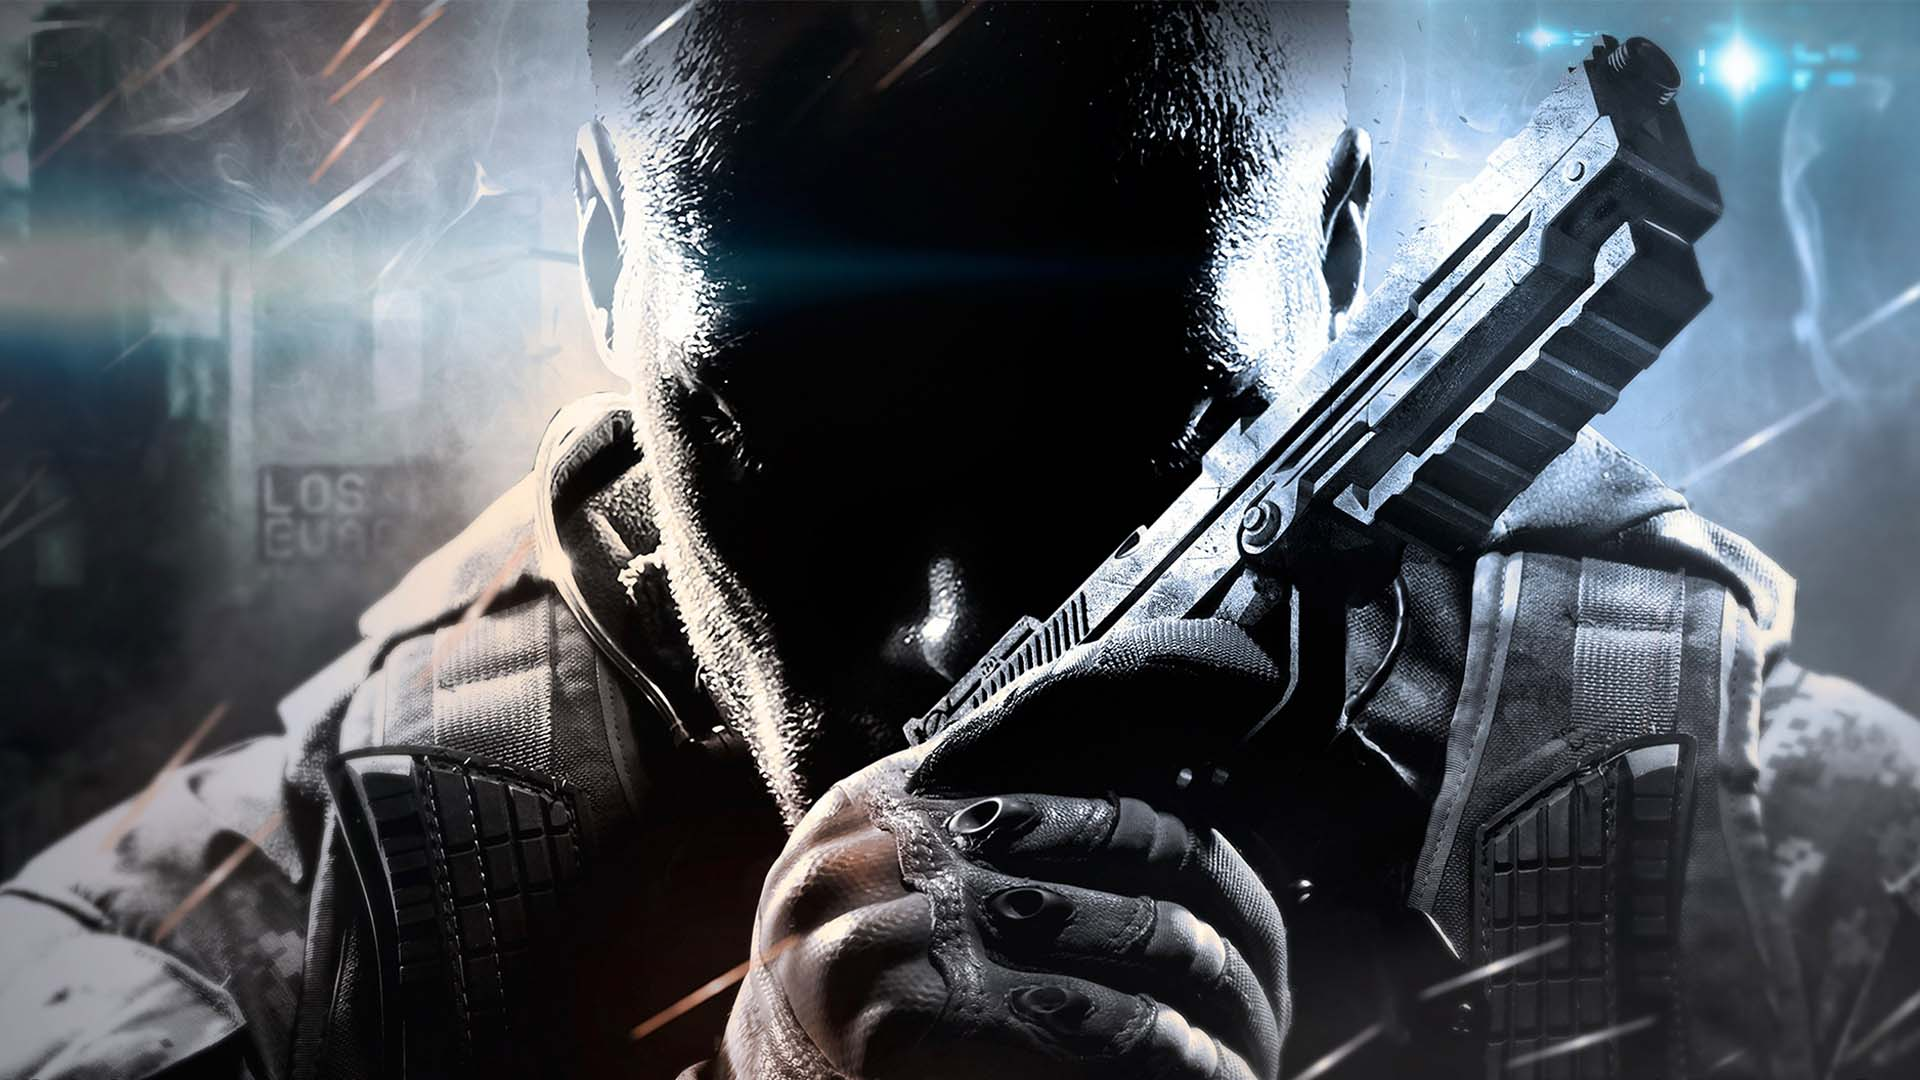 49 Call Of Duty Hd Wallpapers On Wallpapersafari